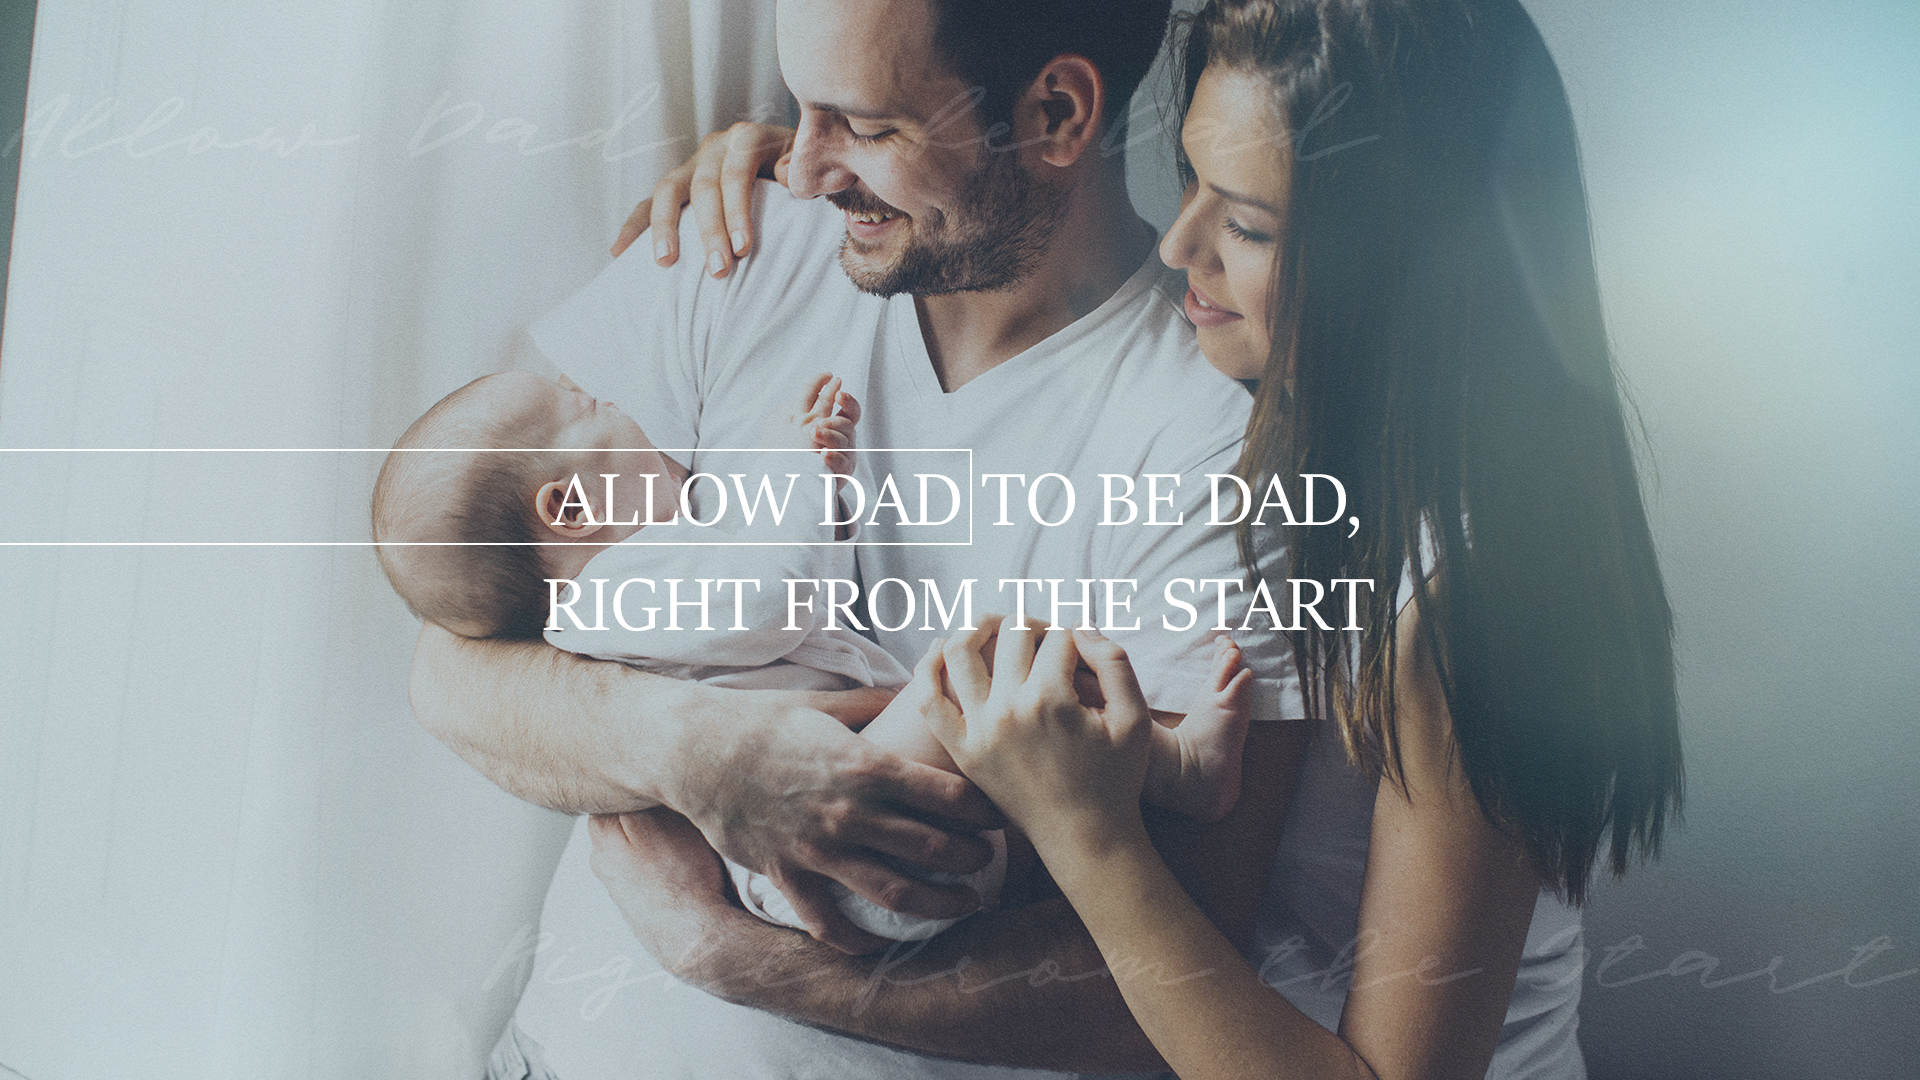 ALLOW DAD TO BE DAD, RIGHT FROM THE START